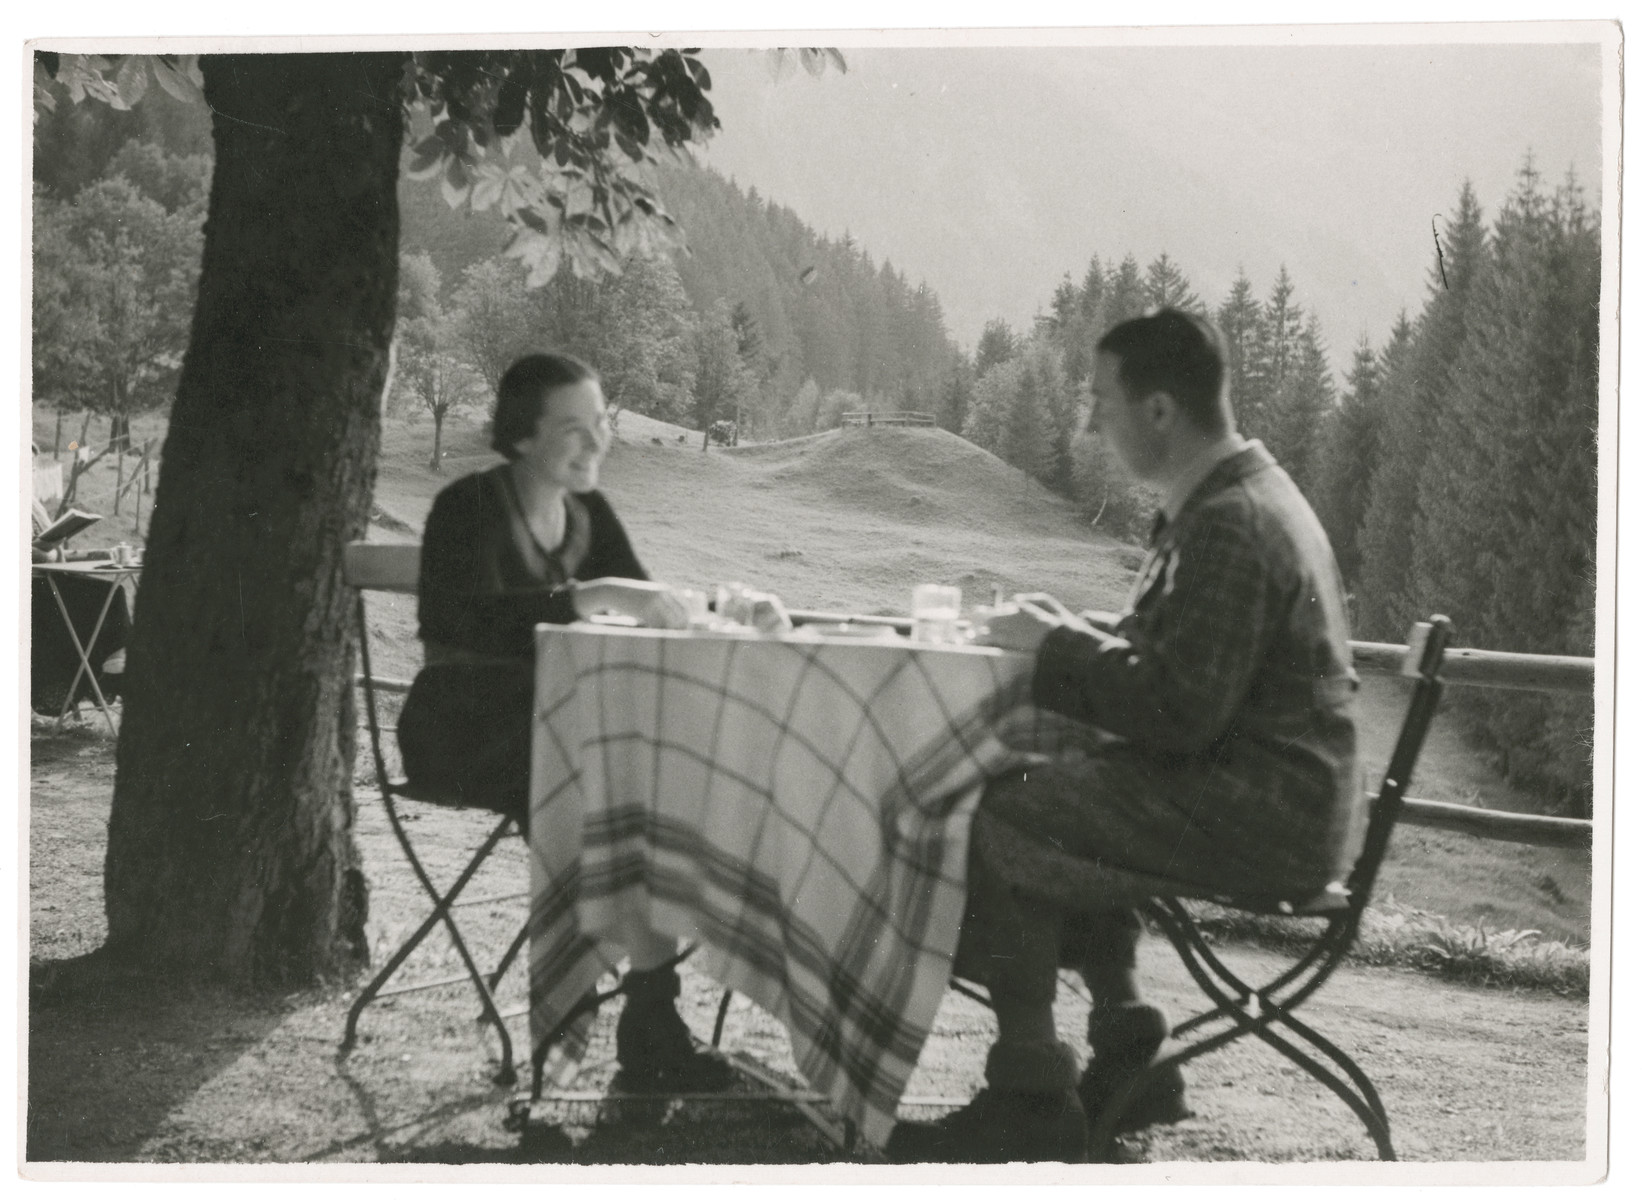 Vilma and Kurt Grunwald enjoy a meal in the countryside.